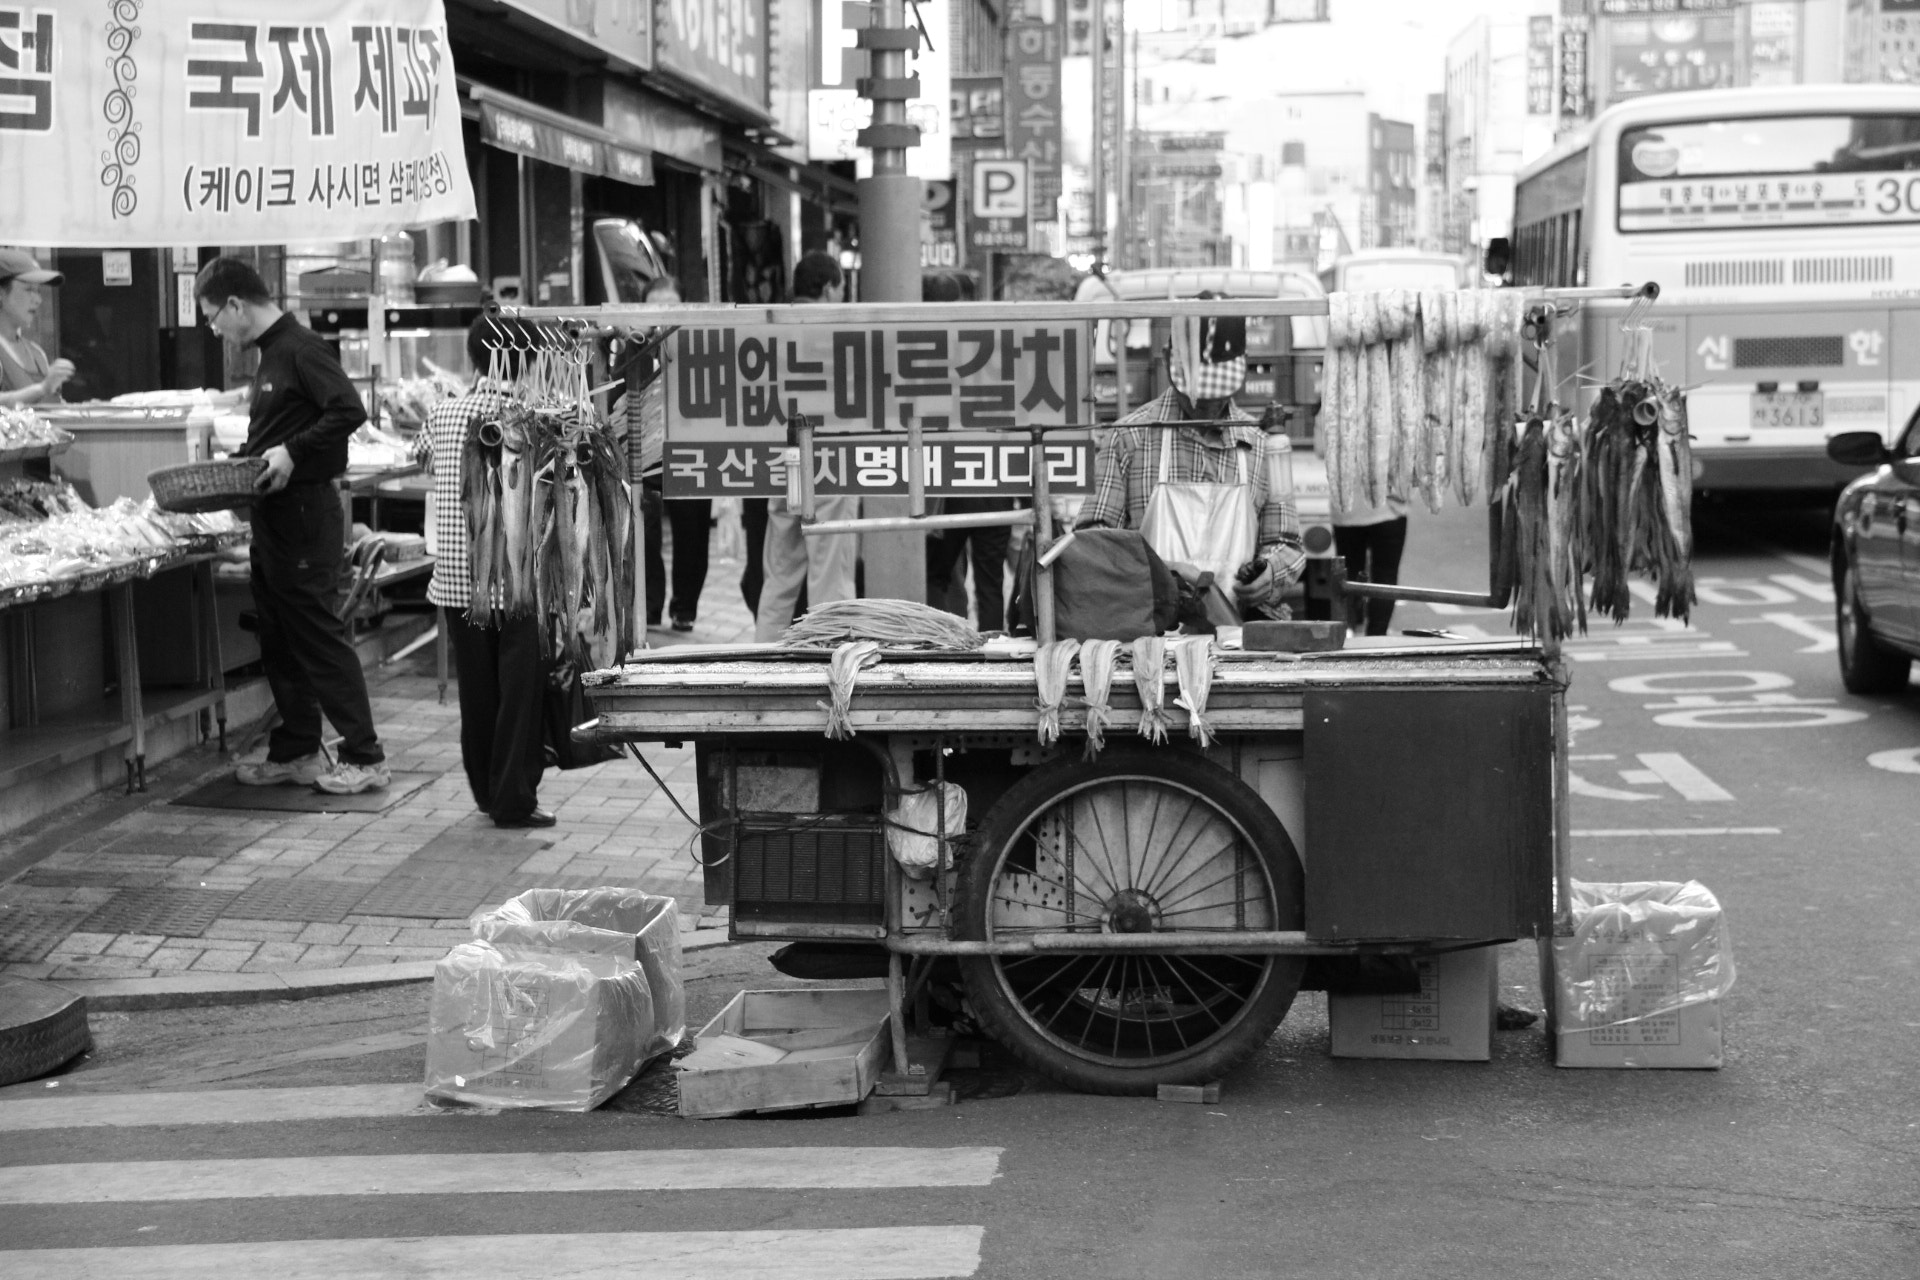 Photograph An old street vendor who is selling dried fish by SUNGMIN HAN on 500px